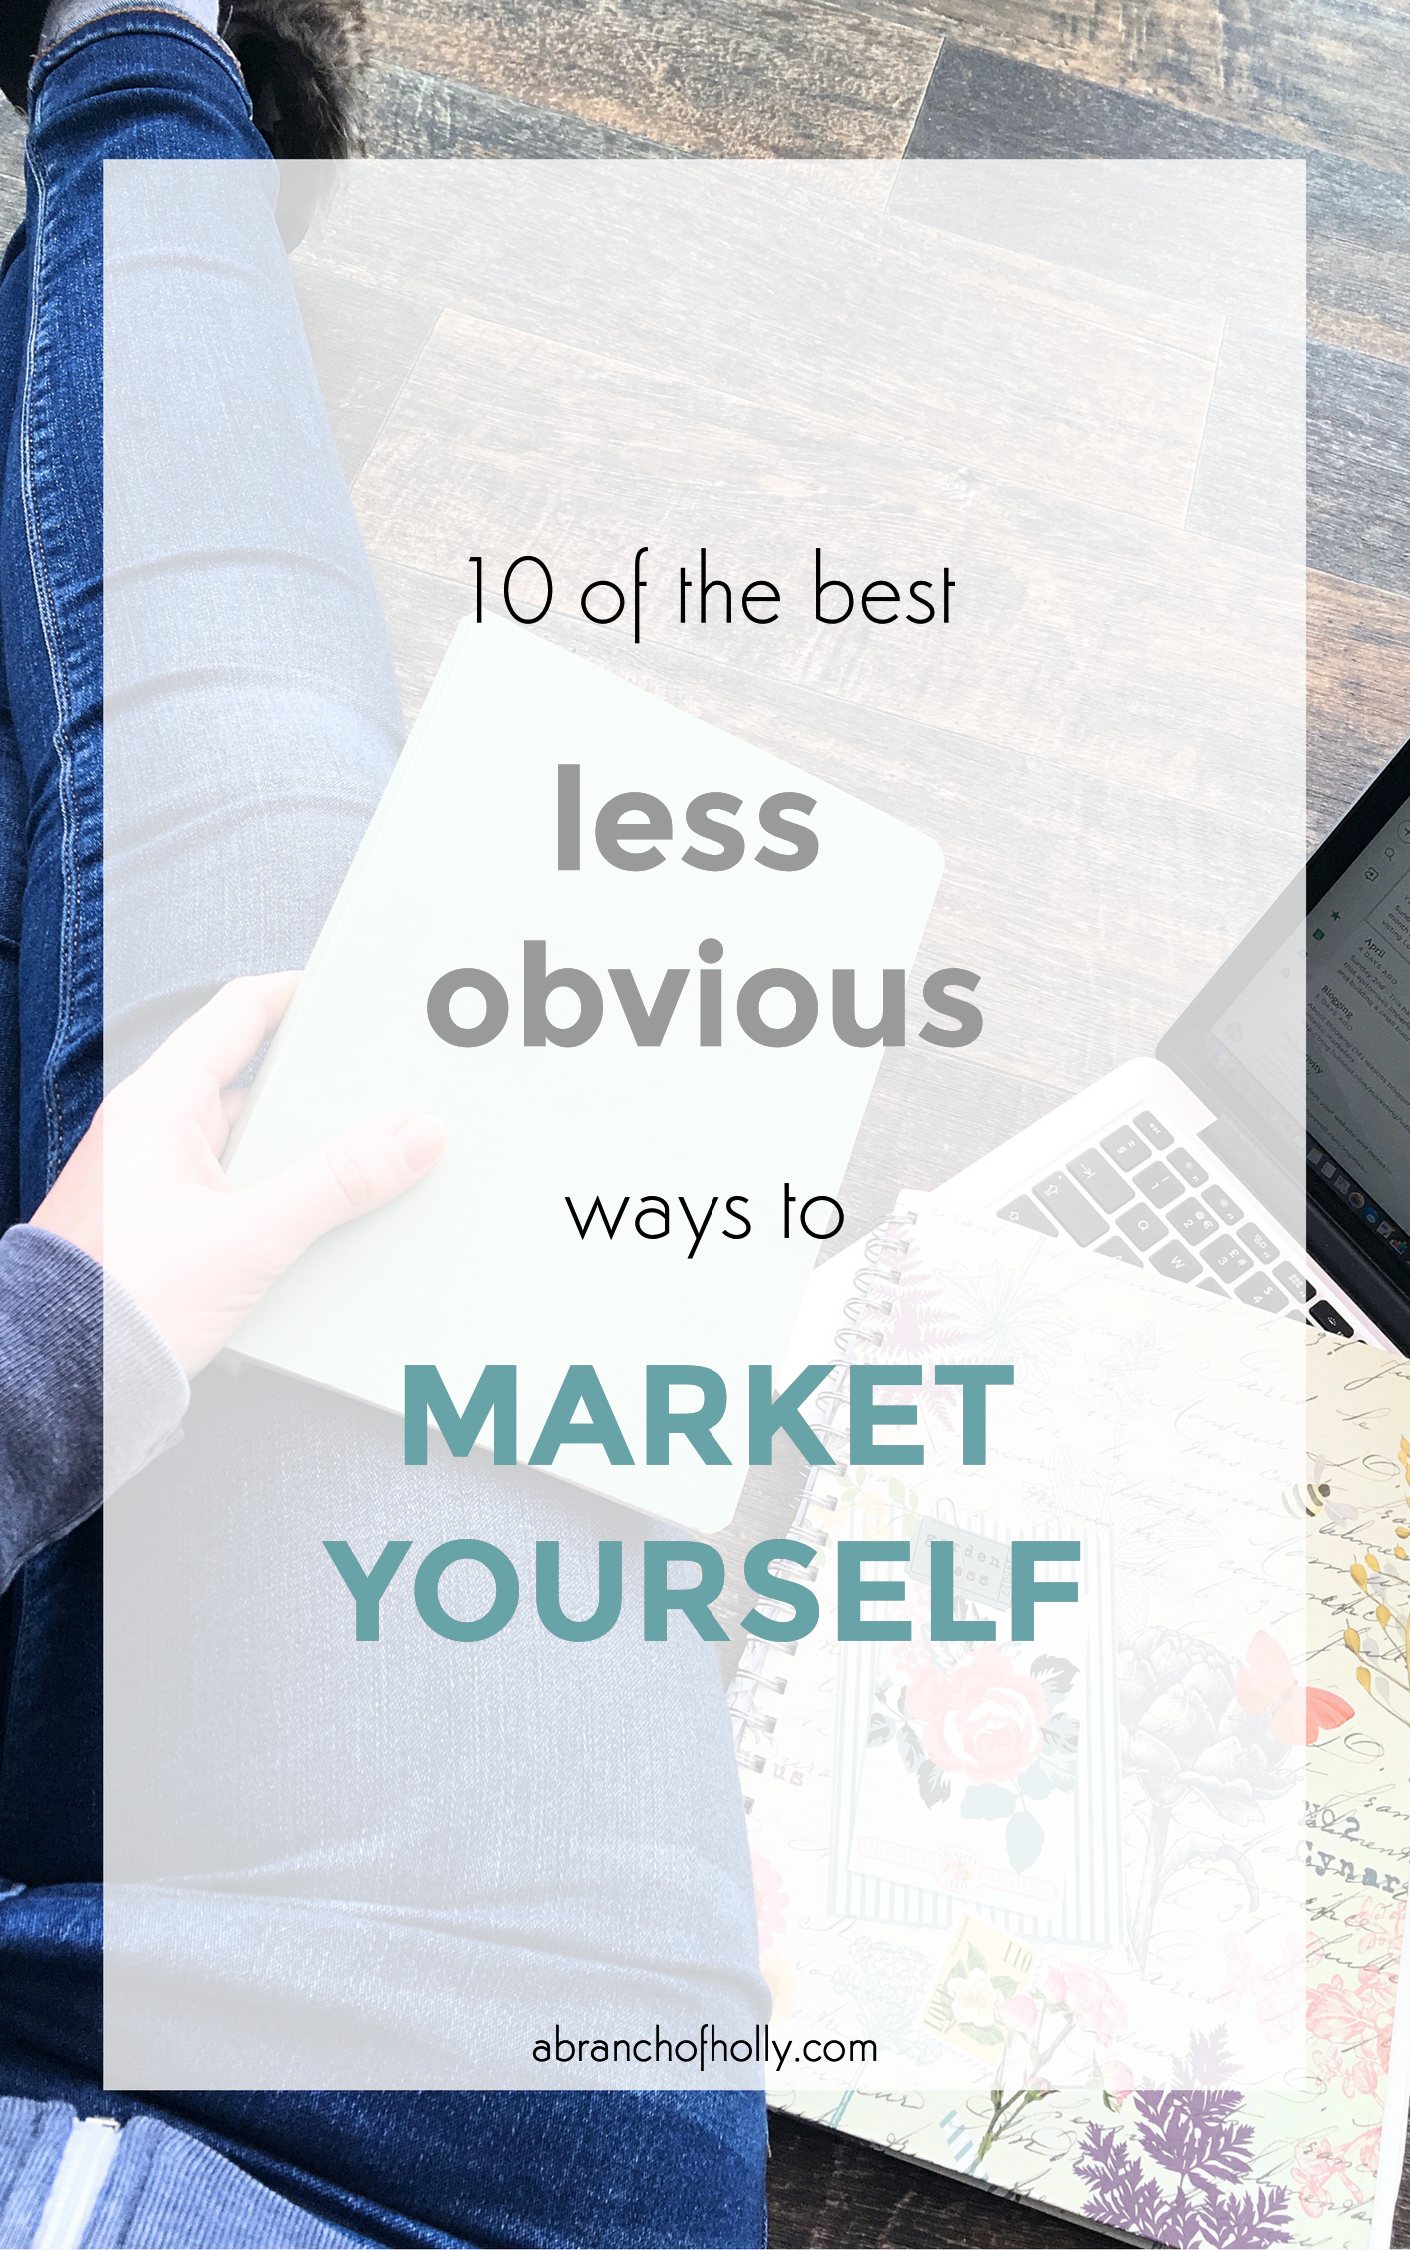 10 of the best less obvious ways to market yourself